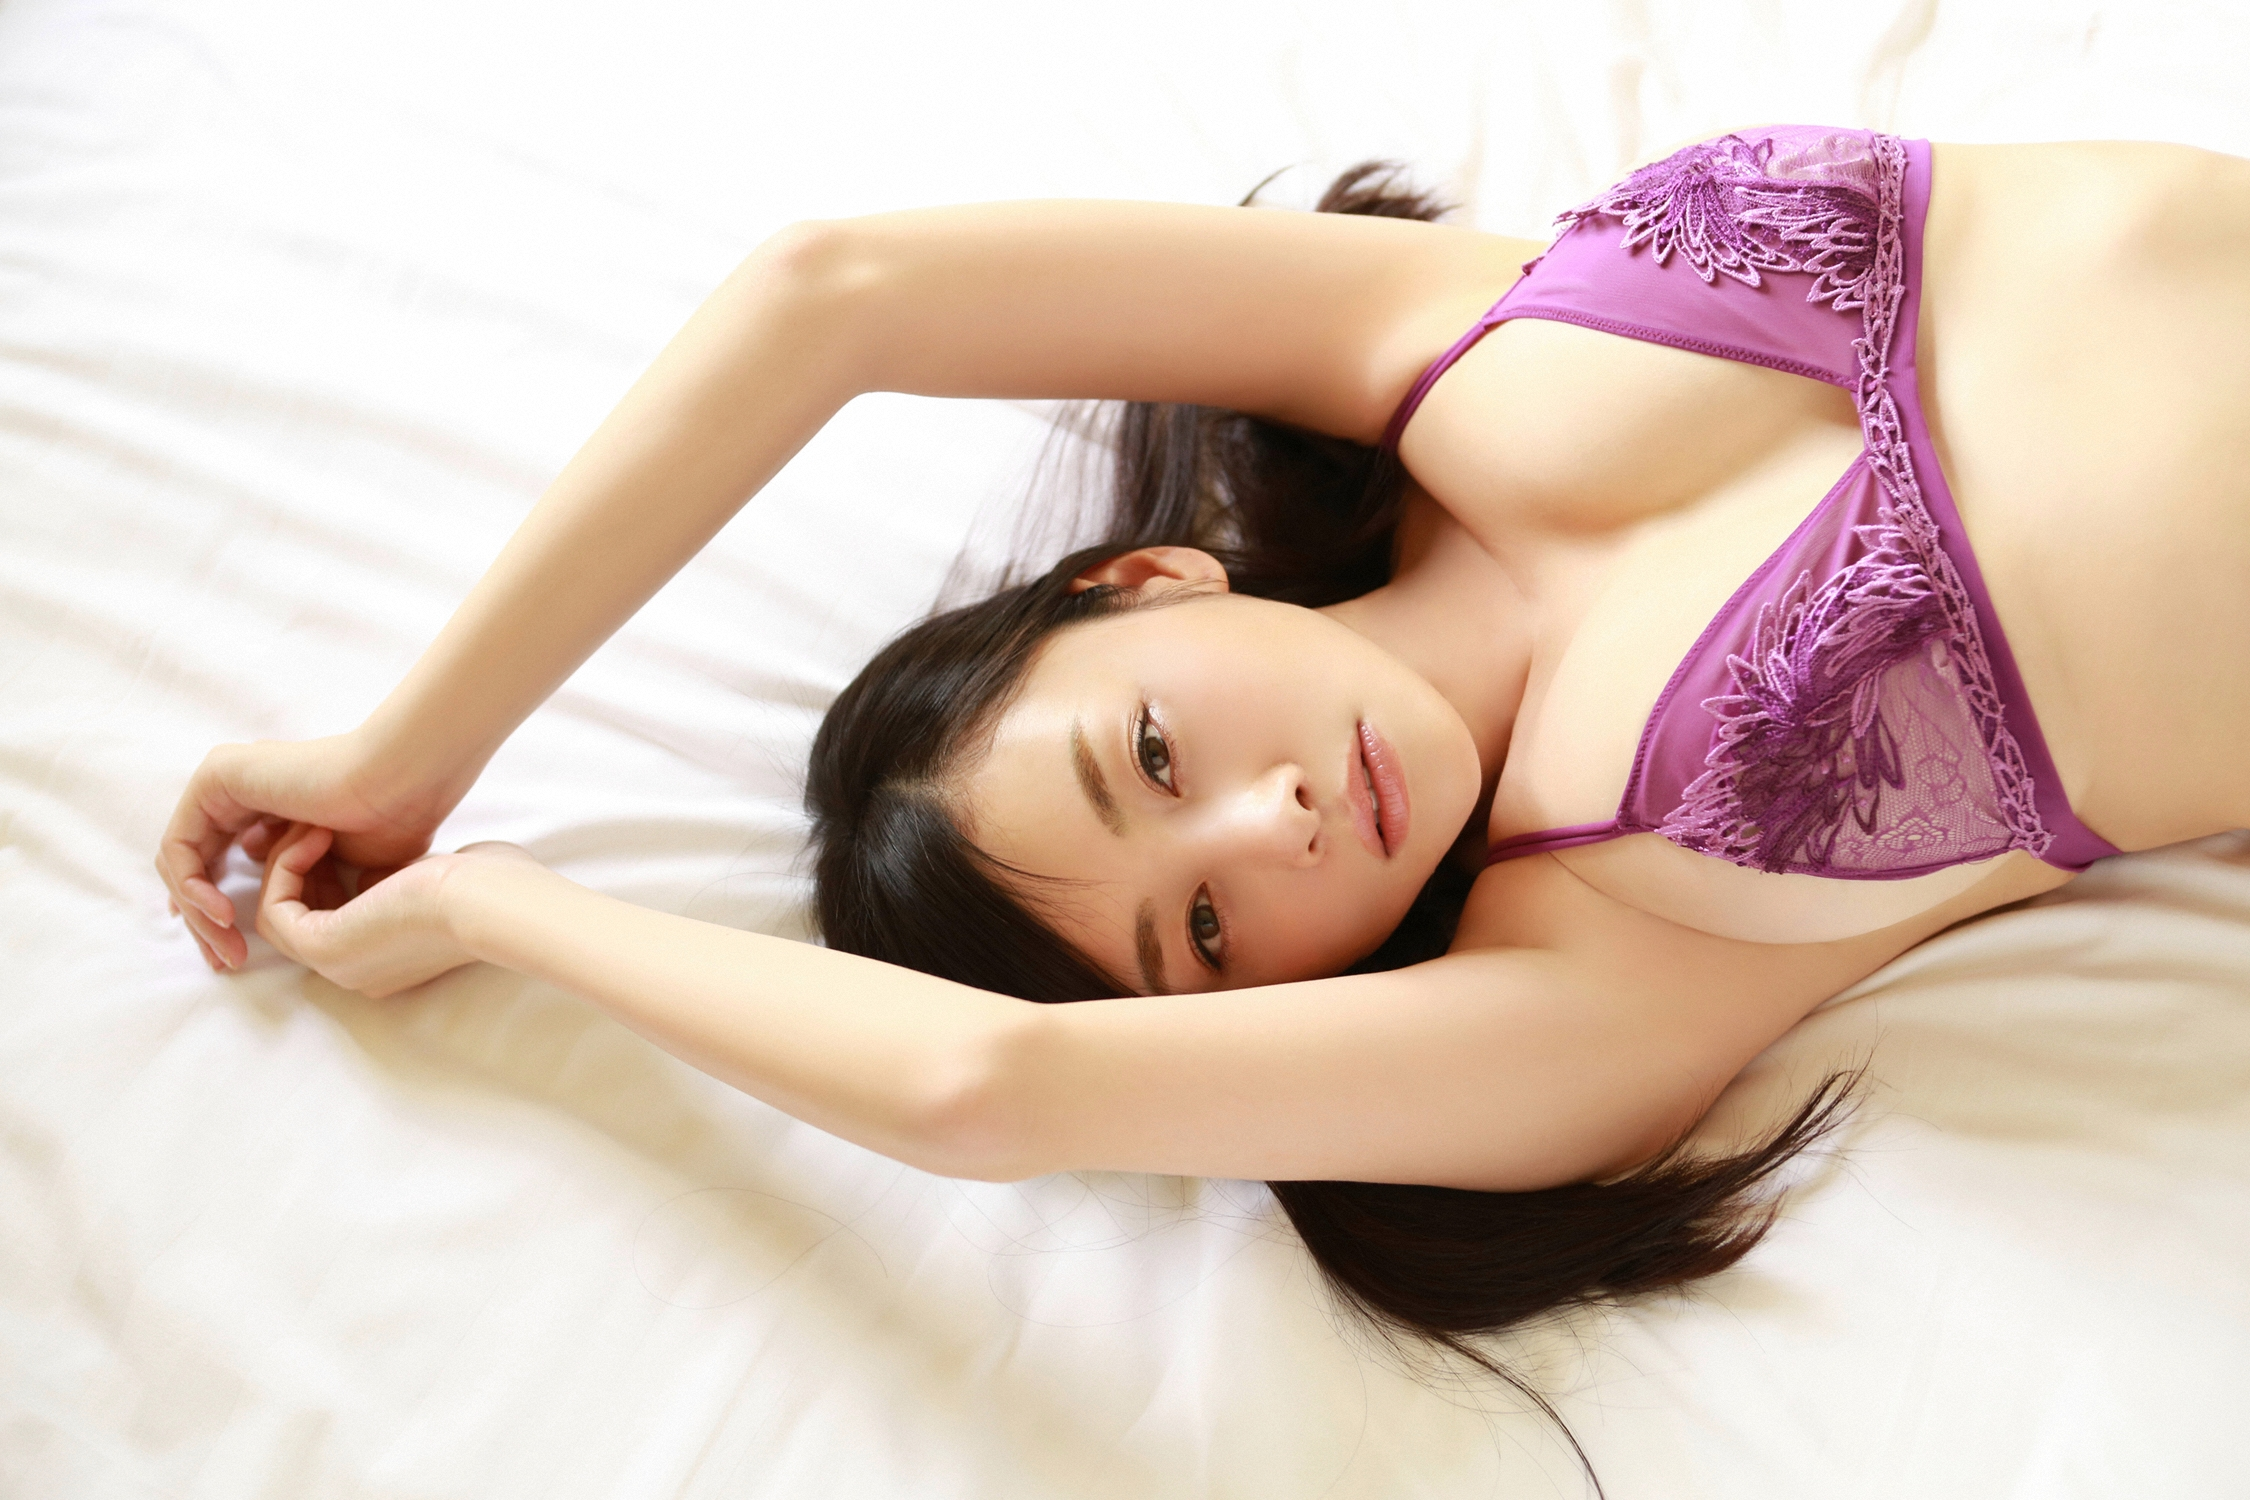 杉原杏璃 Anri Sugihara YS Web Vol 655 Pictures 92